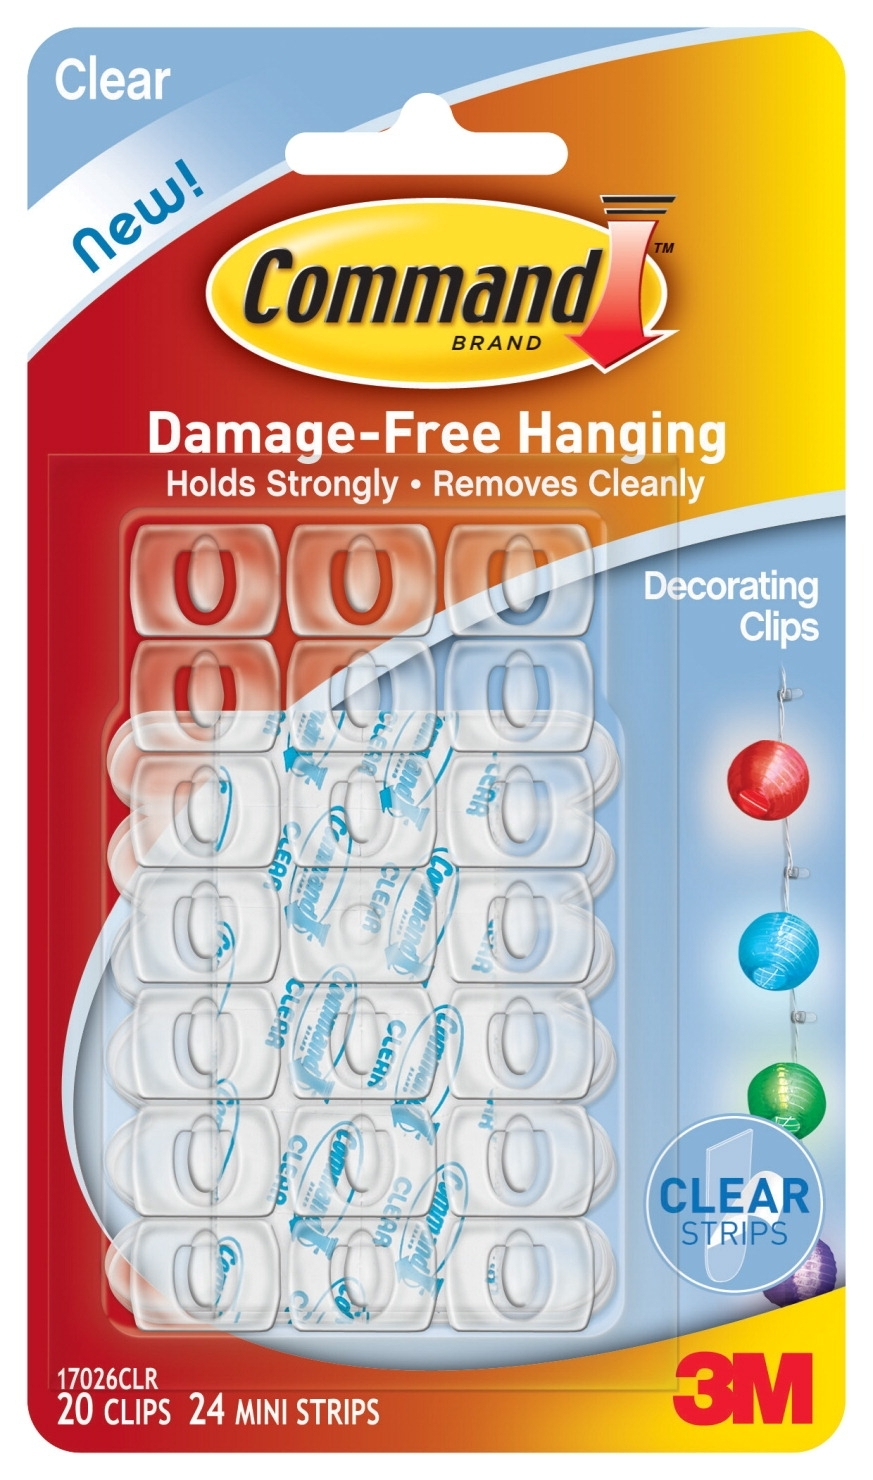 Facilities Power Strips & Cords & Plugs Power Strips & Outlet Strips - 1434802 - Command Decorating Clip With 24 Adhesive Mini Strips; Clear; Pack Of 20 1434802